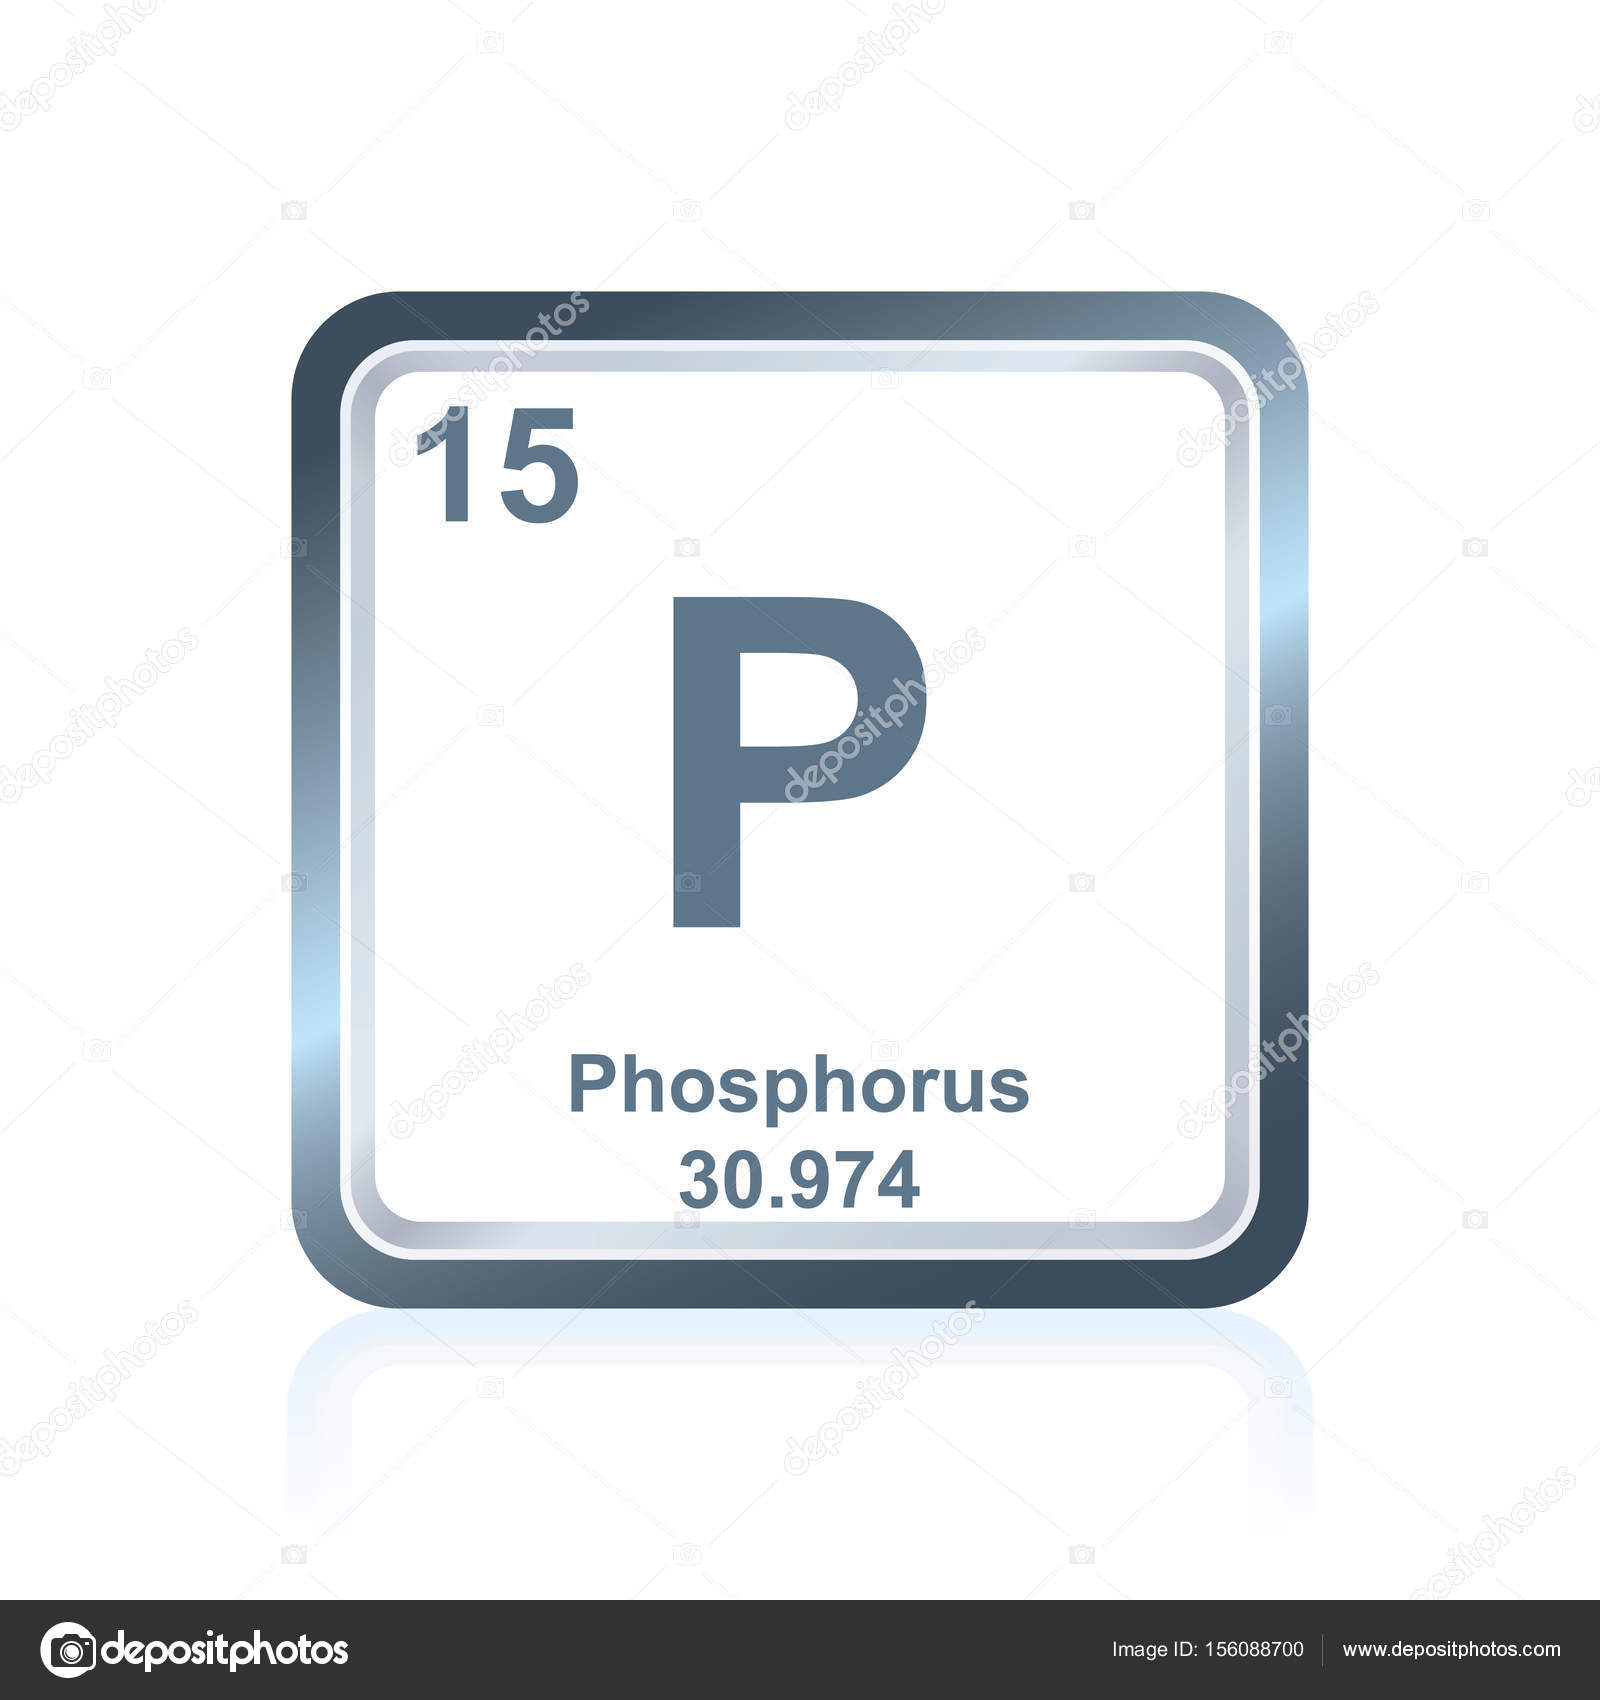 Chemical element phosphorus from the periodic table stock vector symbol of chemical element phosphorus as seen on the periodic table of the elements including atomic number and atomic weight vector by noedelhap urtaz Images